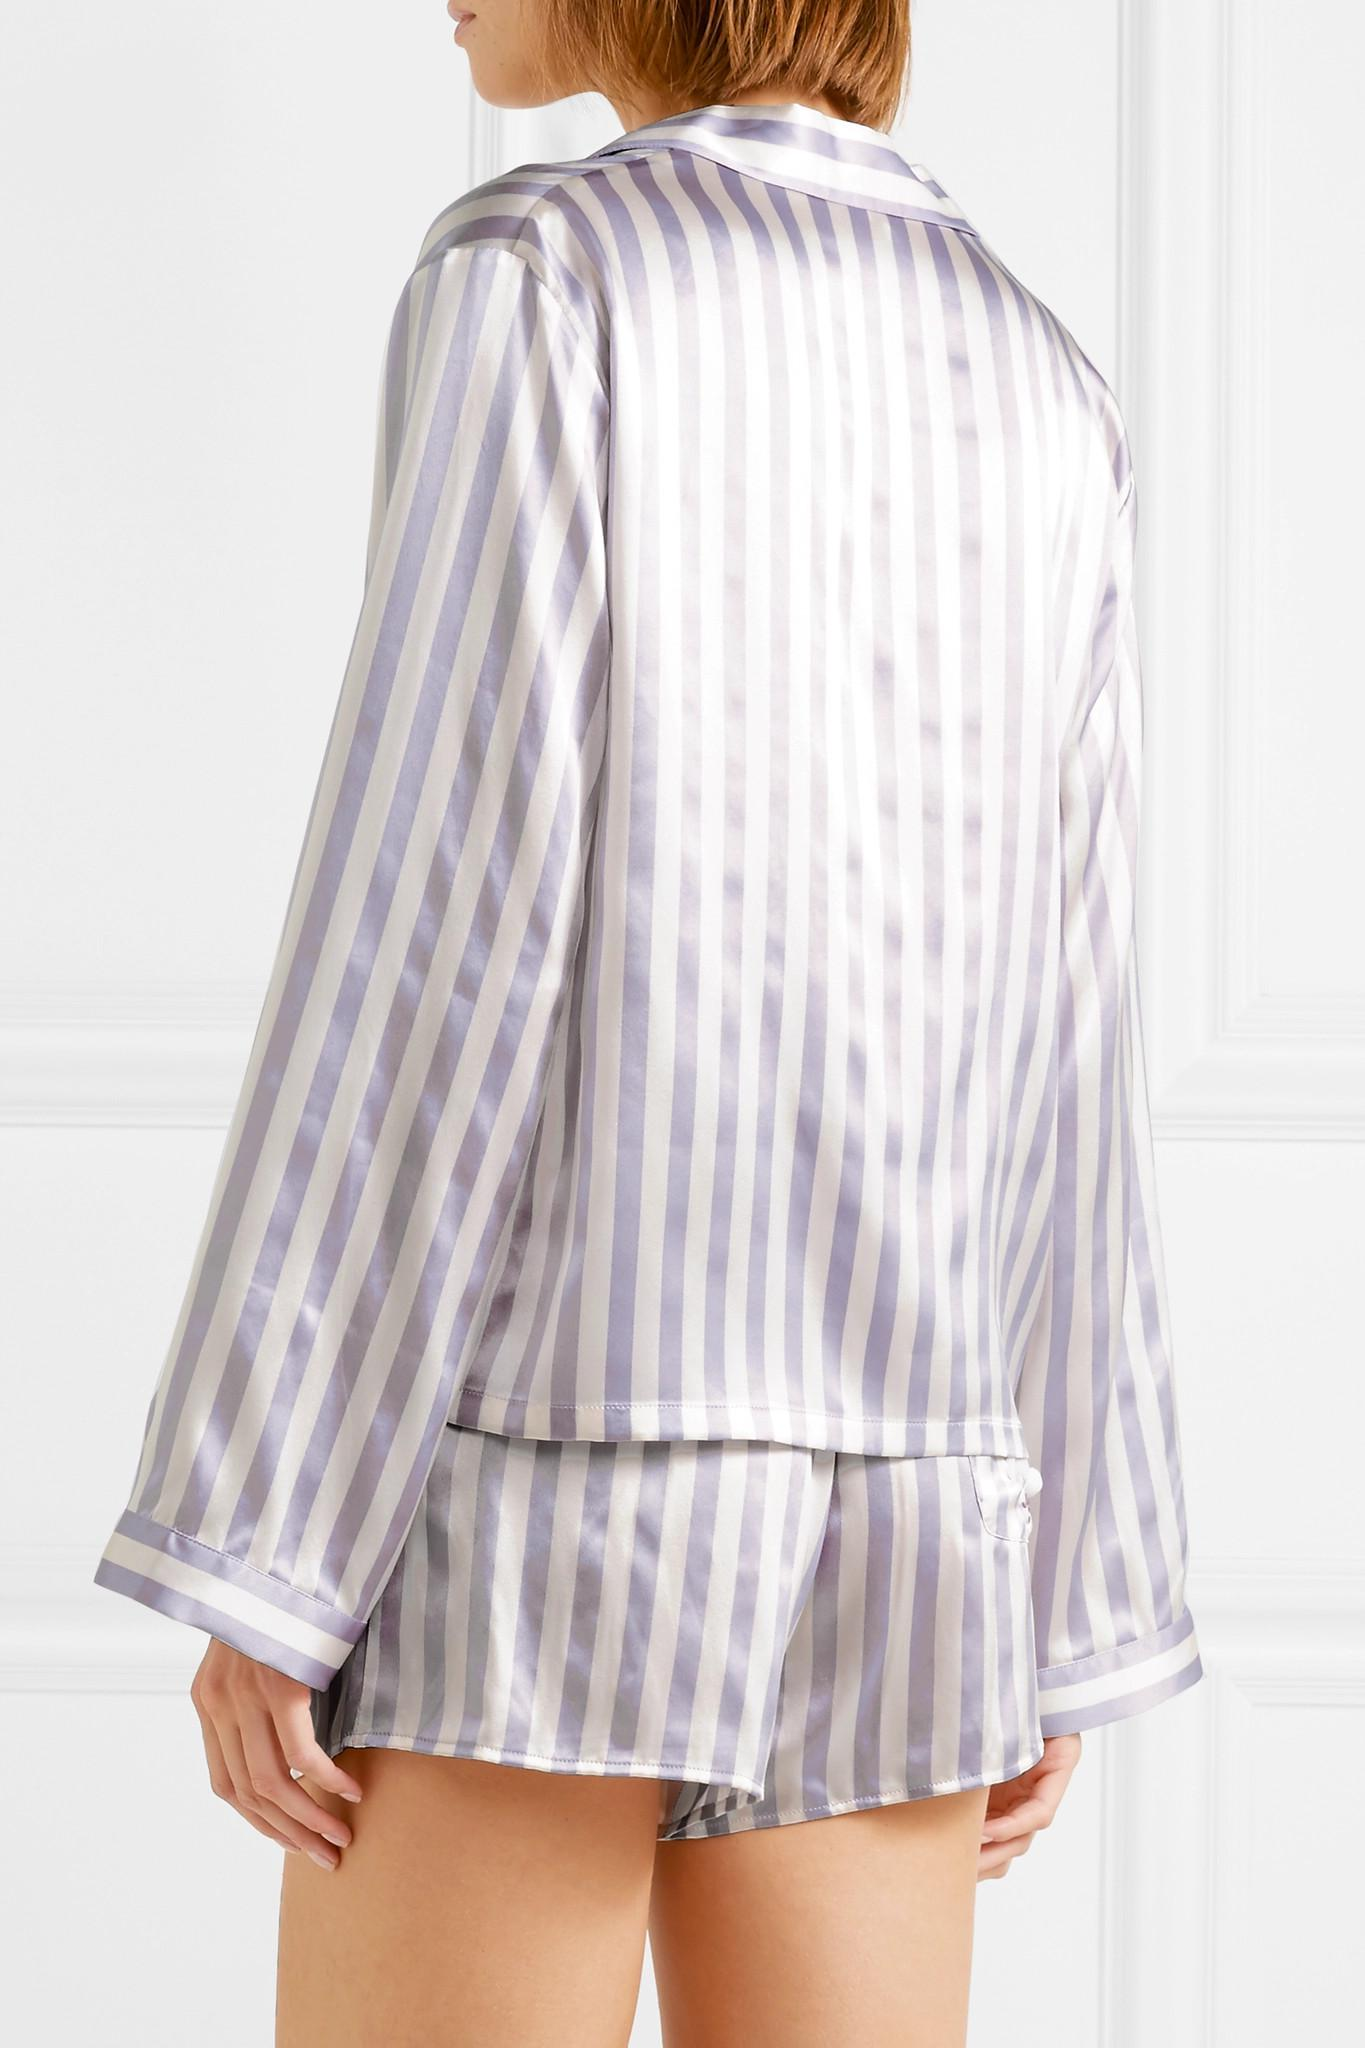 Morgan Lane - Purple + Amanda Fatherazi Ruthie Appliquéd Striped Silk-charmeuse  Pajama Shirt -. View fullscreen 8a5395470